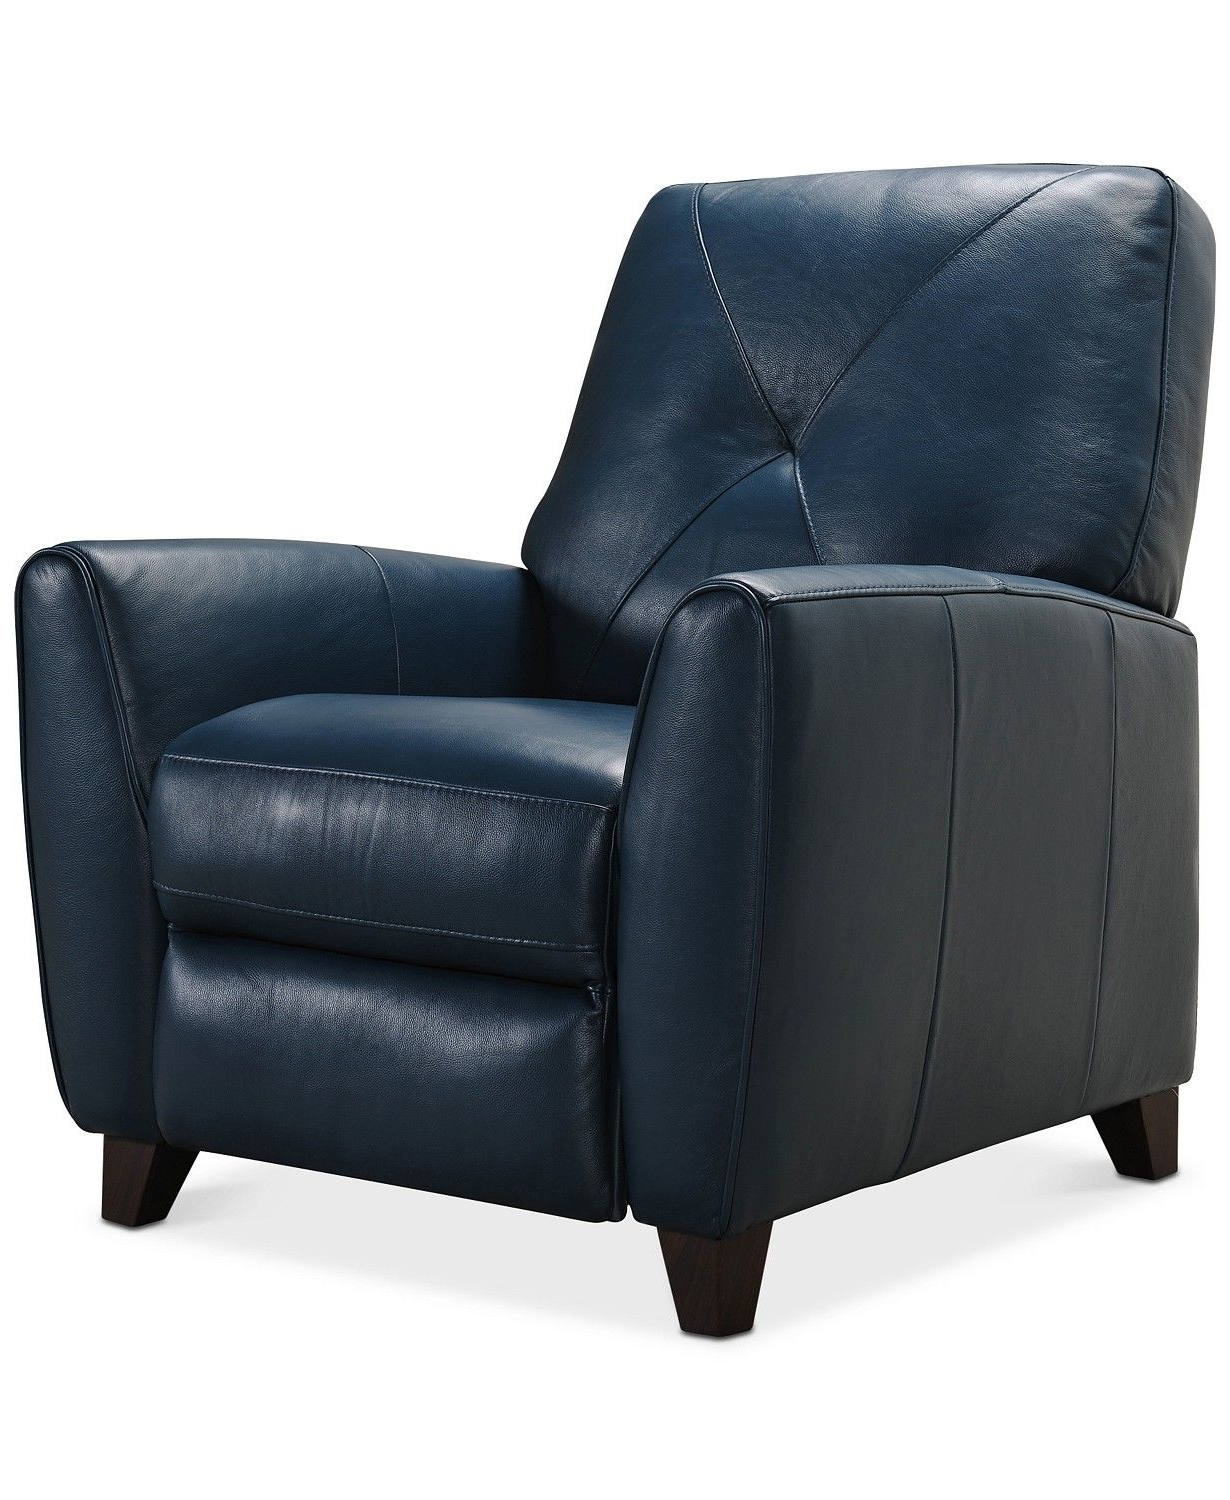 Myia Armchairs Regarding Most Popular Furniture Myia Leather Pushback Recliner, Created For Macy's (View 7 of 20)